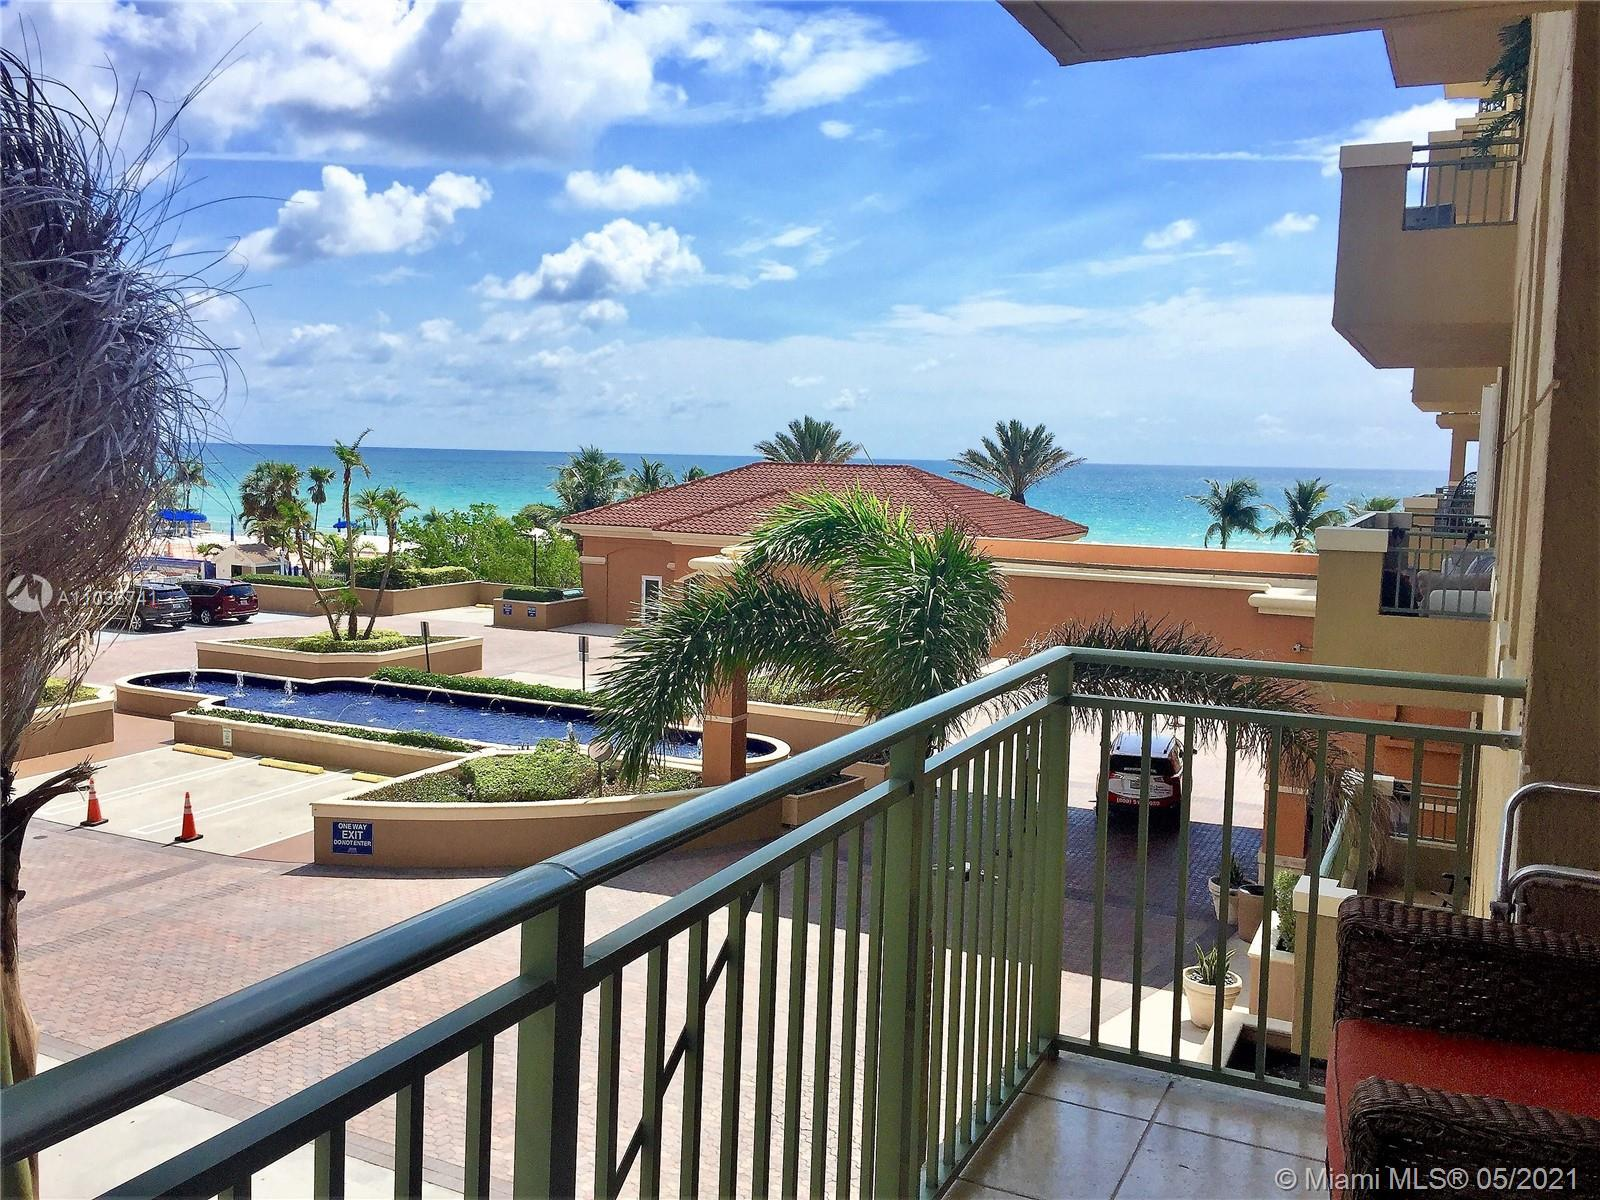 Come enjoy the beach life at 2080 Ocean Drive! This unit shows pride of ownership. Upgrades include